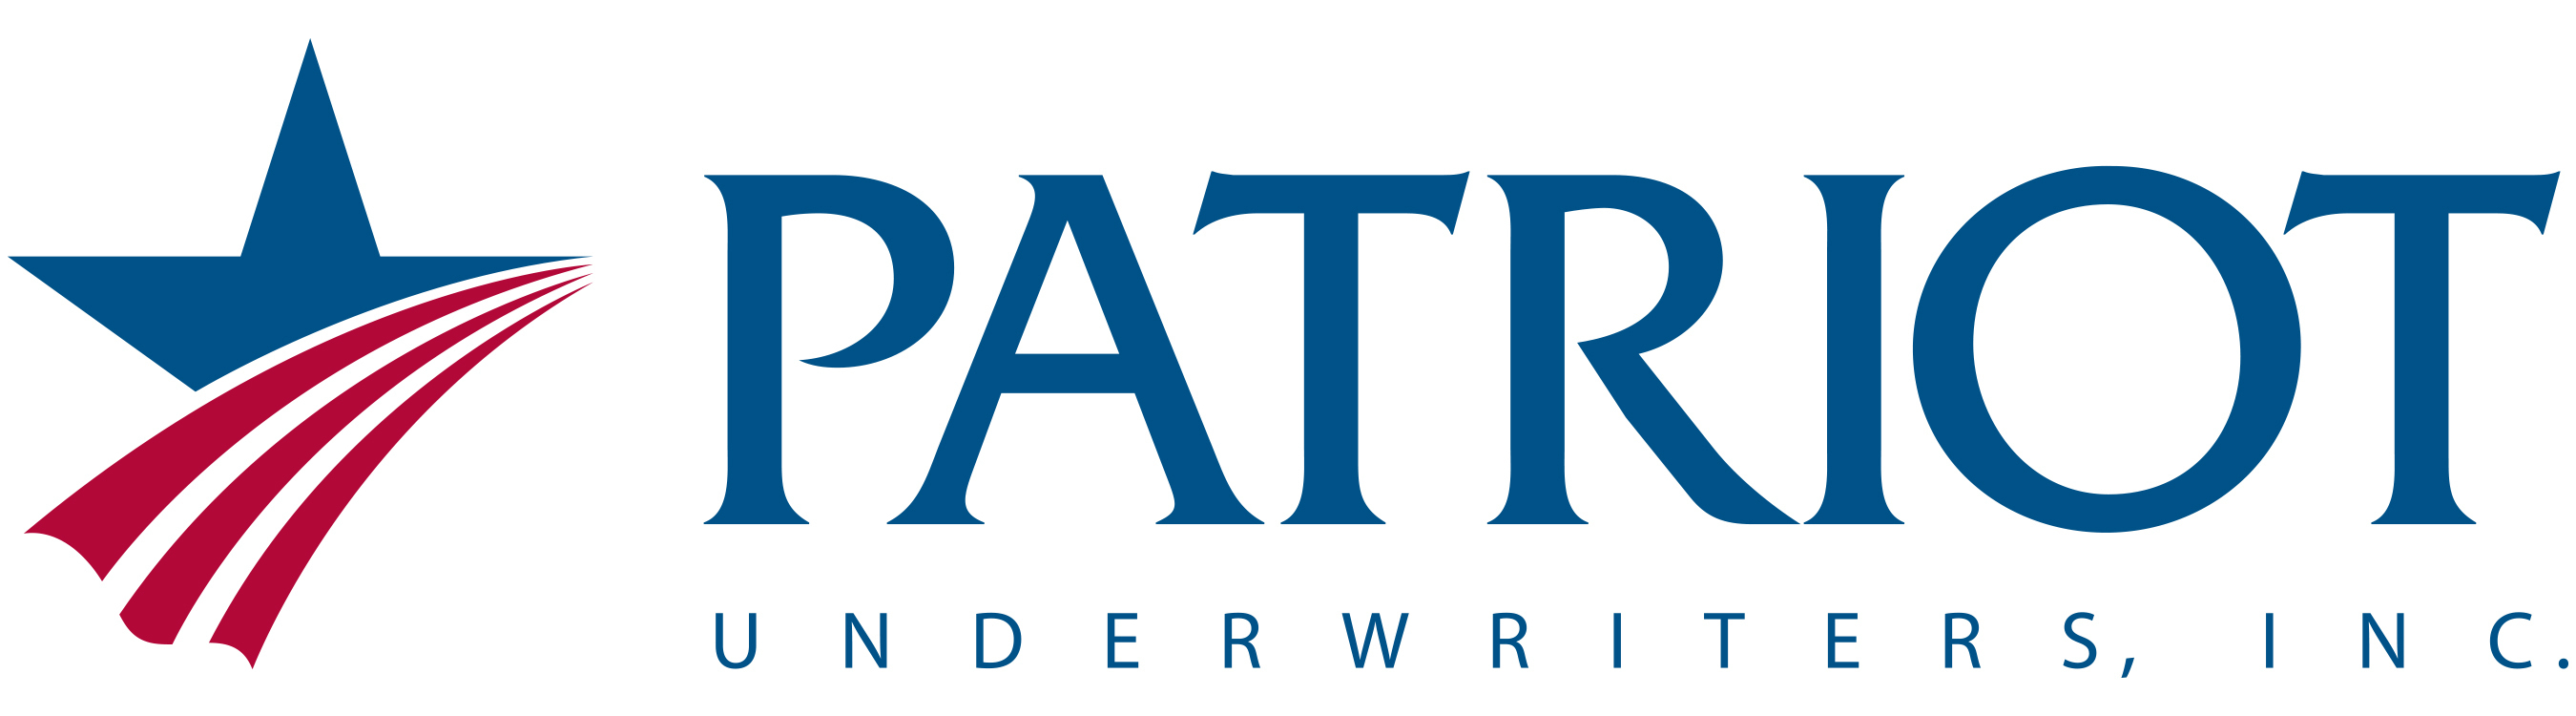 National Underwriting Services Inc